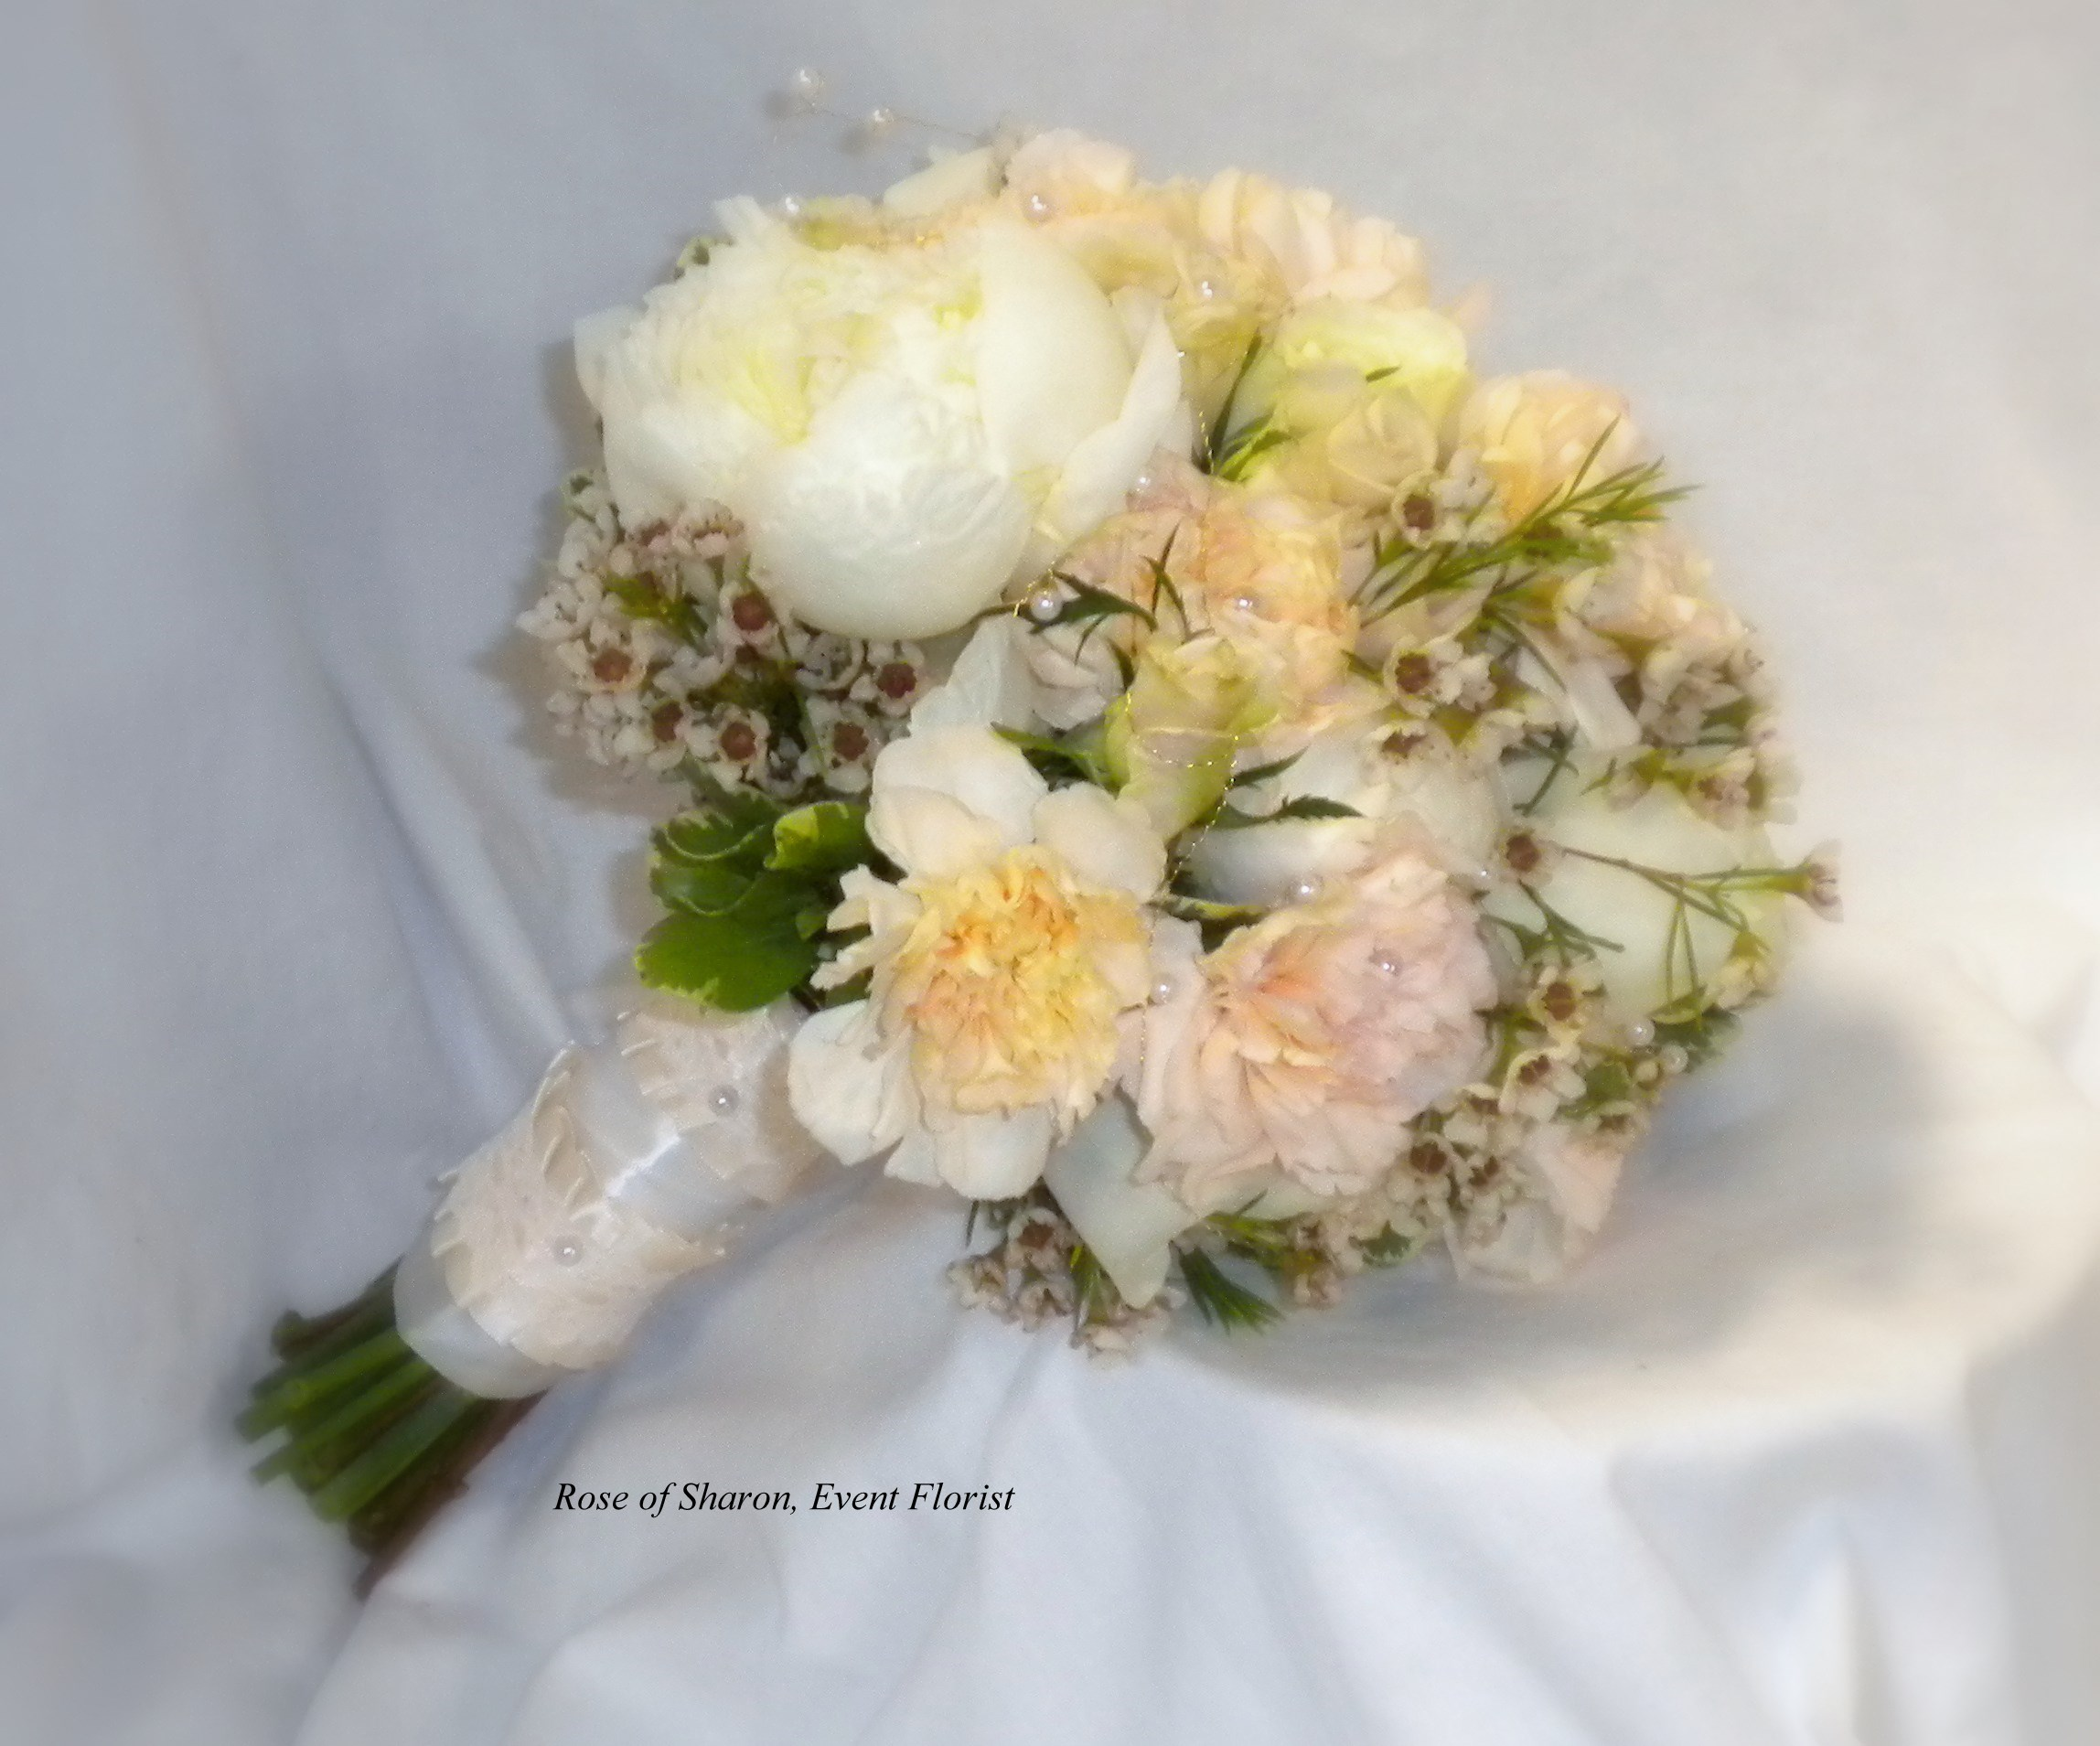 Hand Tied Bouquet featuring Carnations, Peonies and Wax Flower, Rose of Sharon Floral Designs